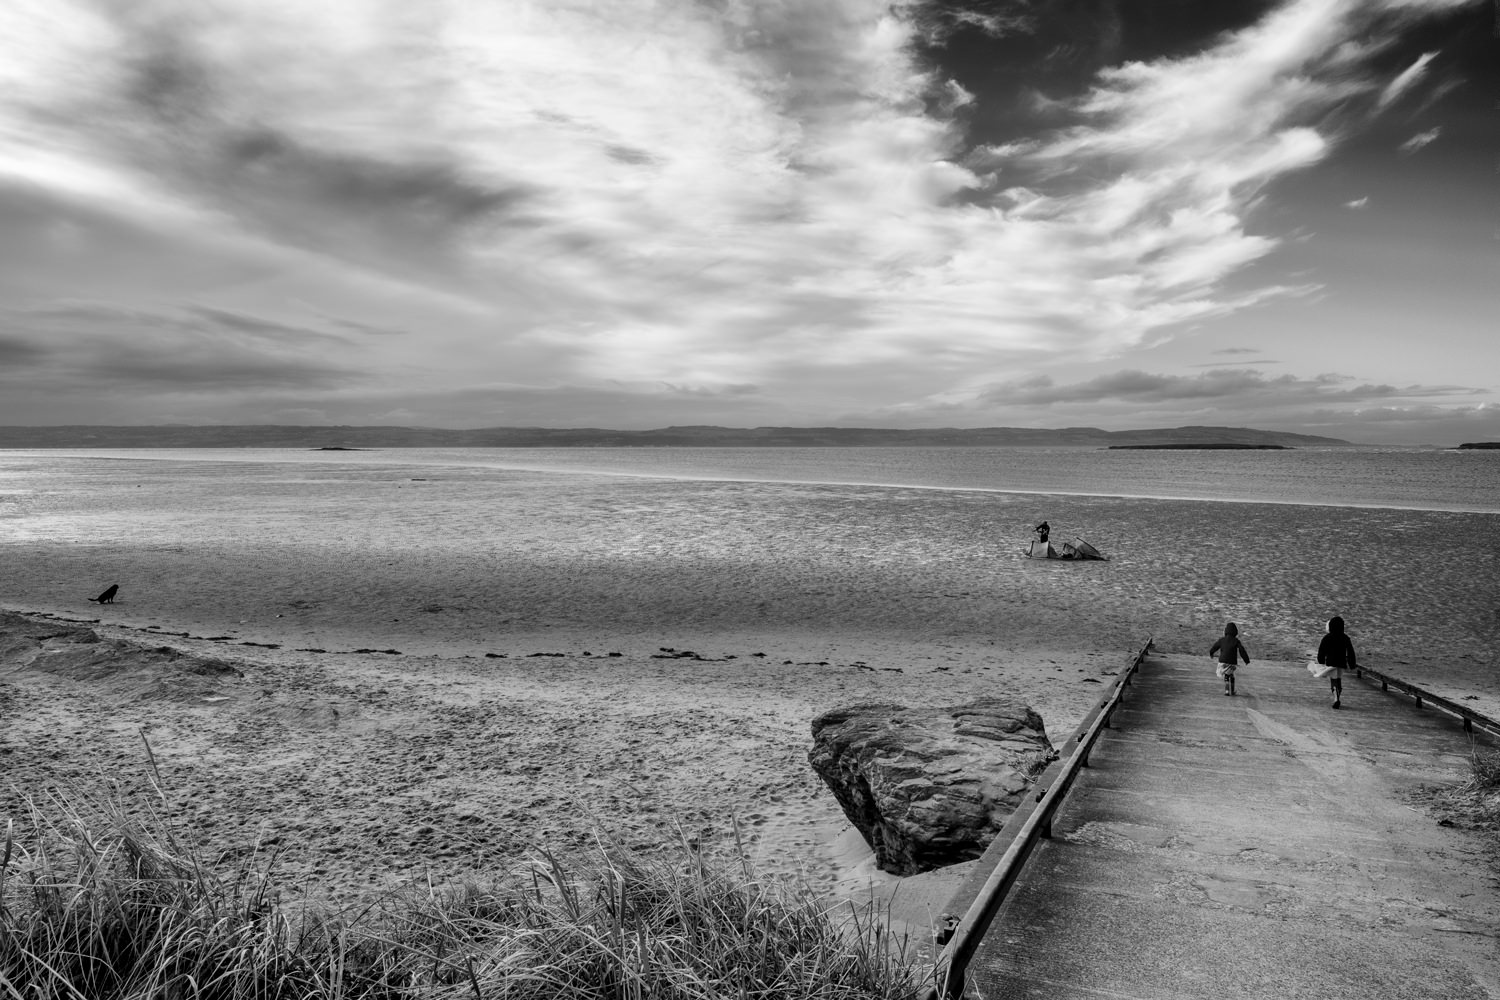 Looking across a sandy beach towards the sea. The North Wales coast is visible across the sea and the sky has dramatic clouds. There are two girls walking on to the beach